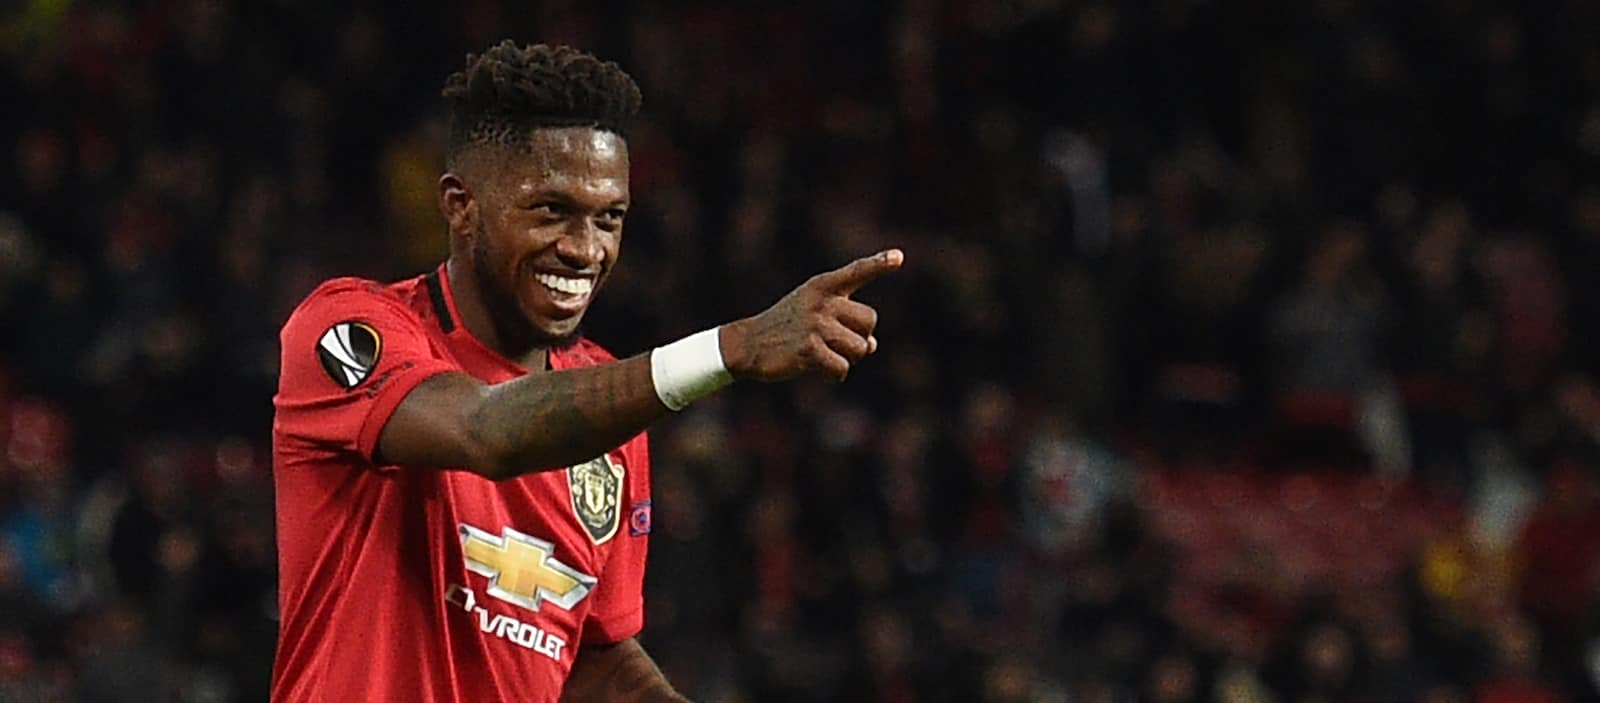 AS Roma target Man United's Fred as well as Chris Smalling